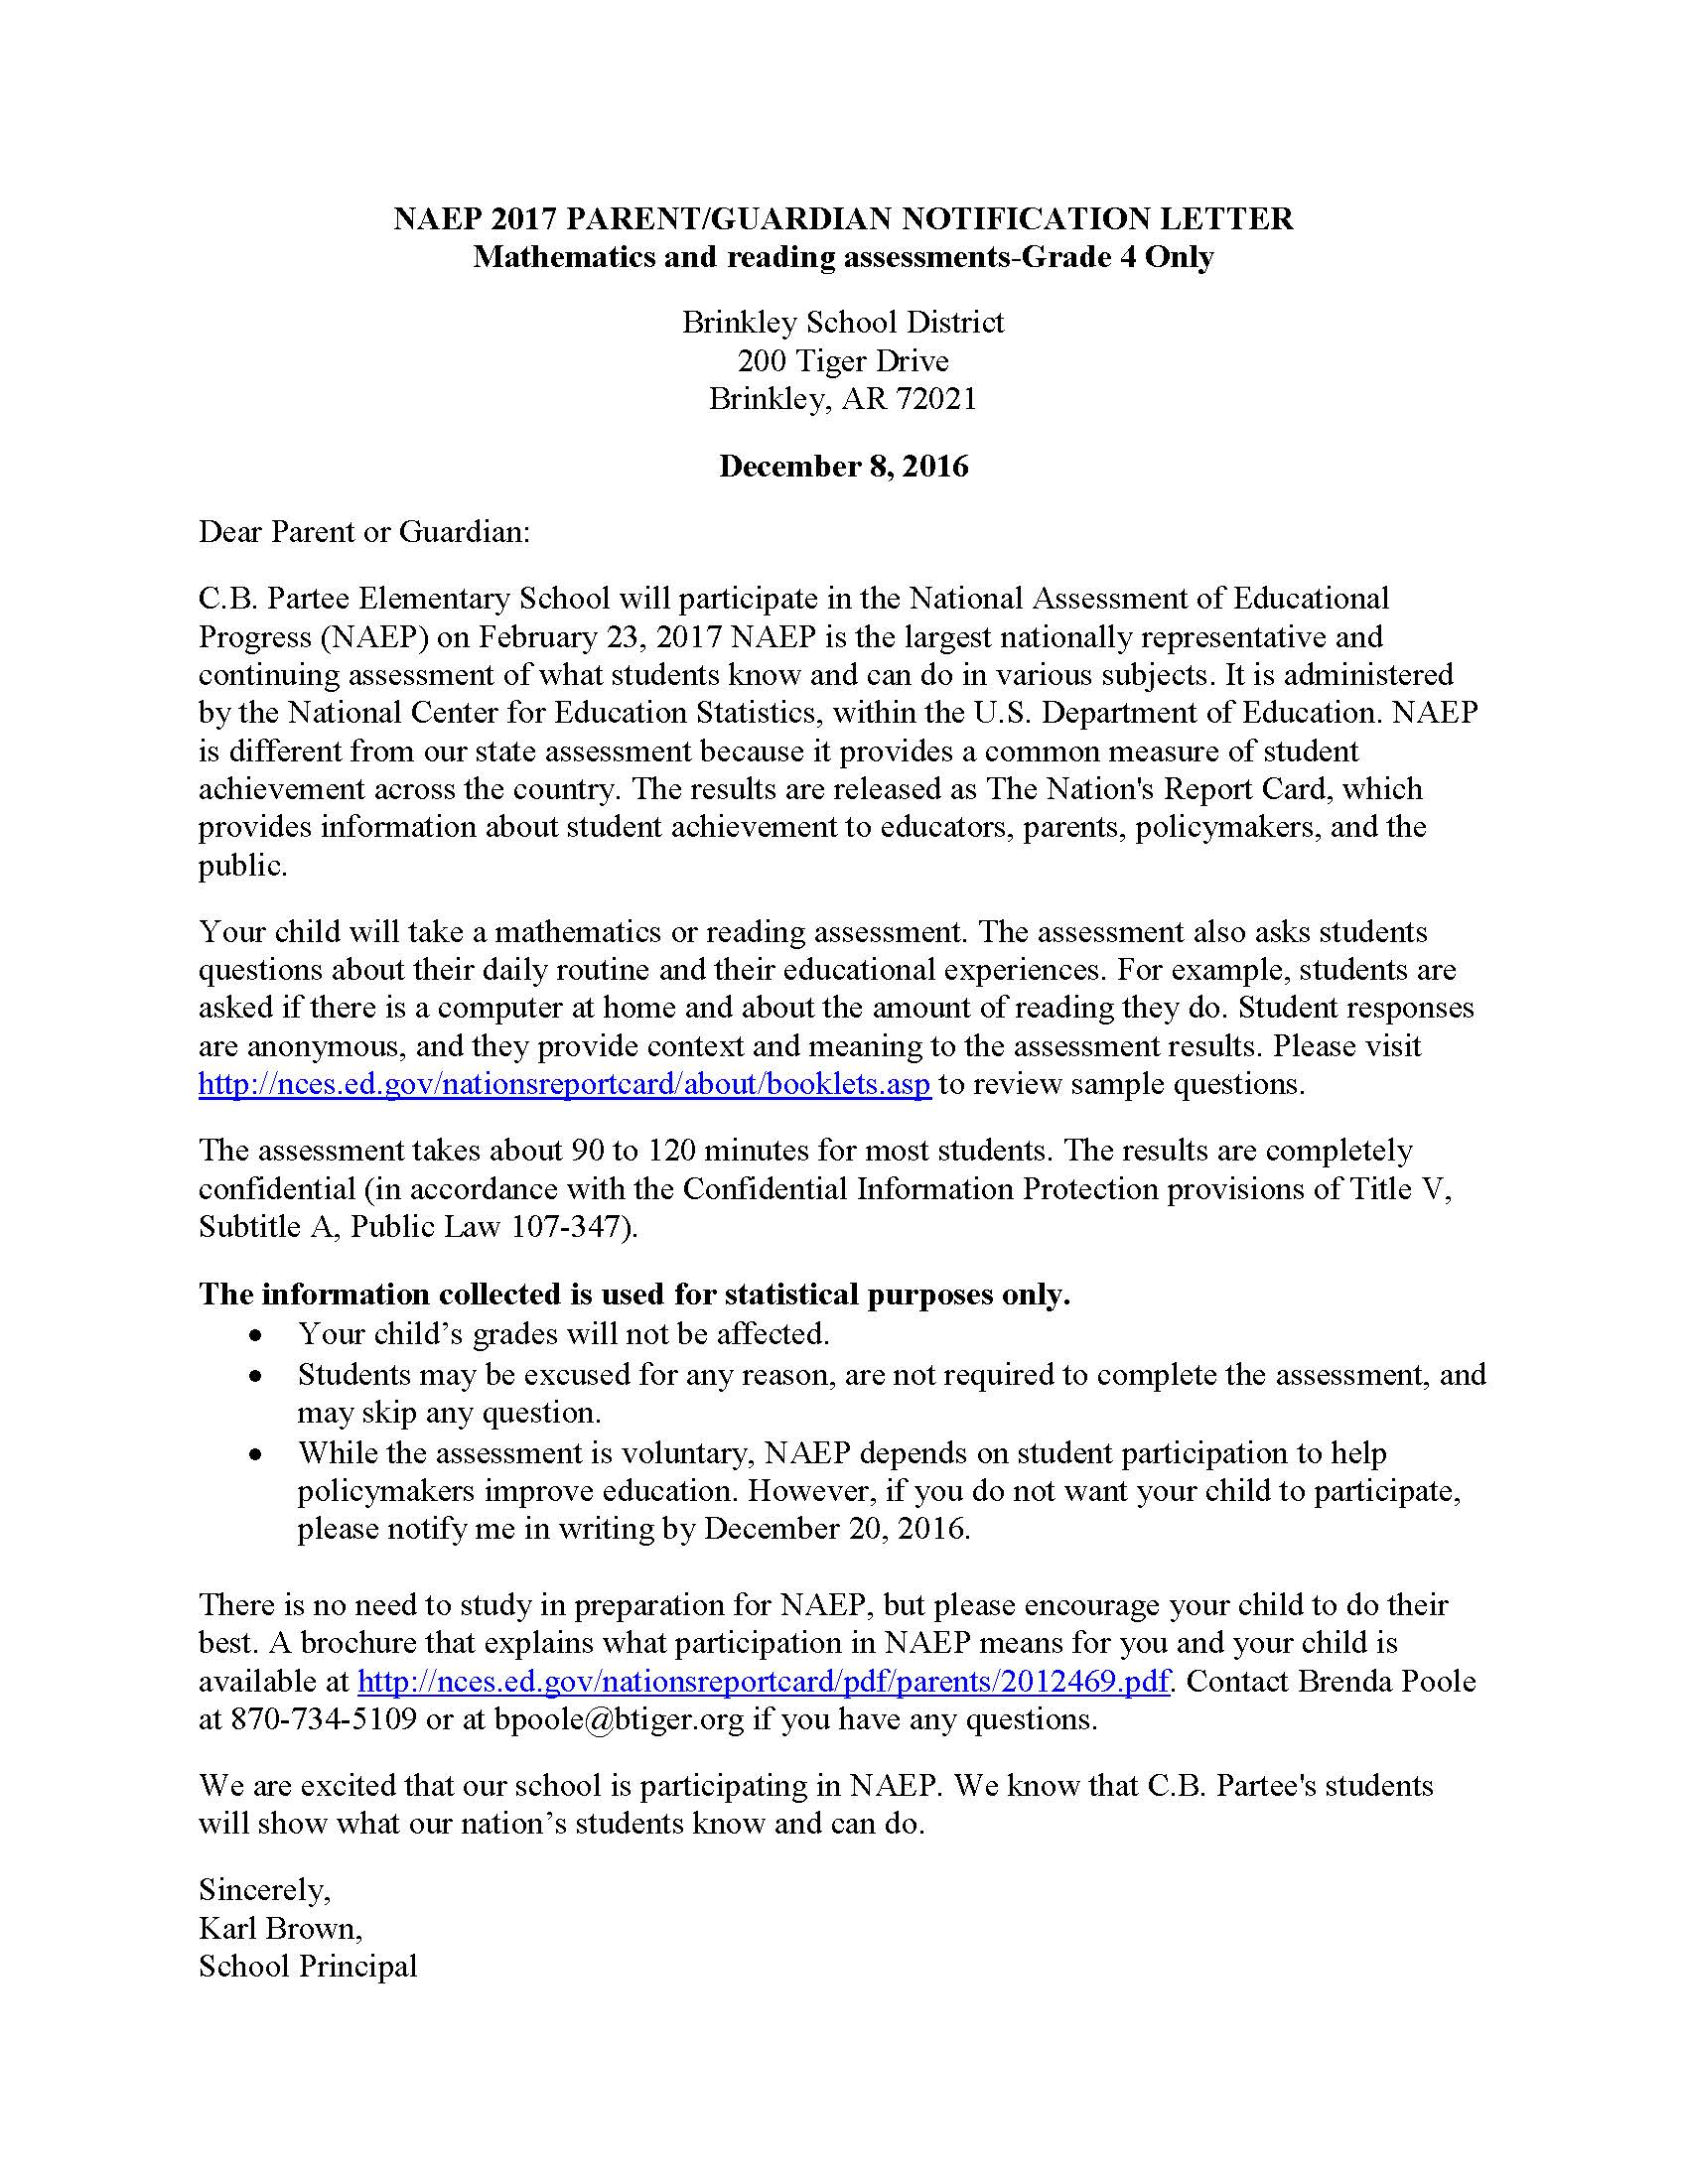 NAEP 2017 Math and Reading Parent Letter